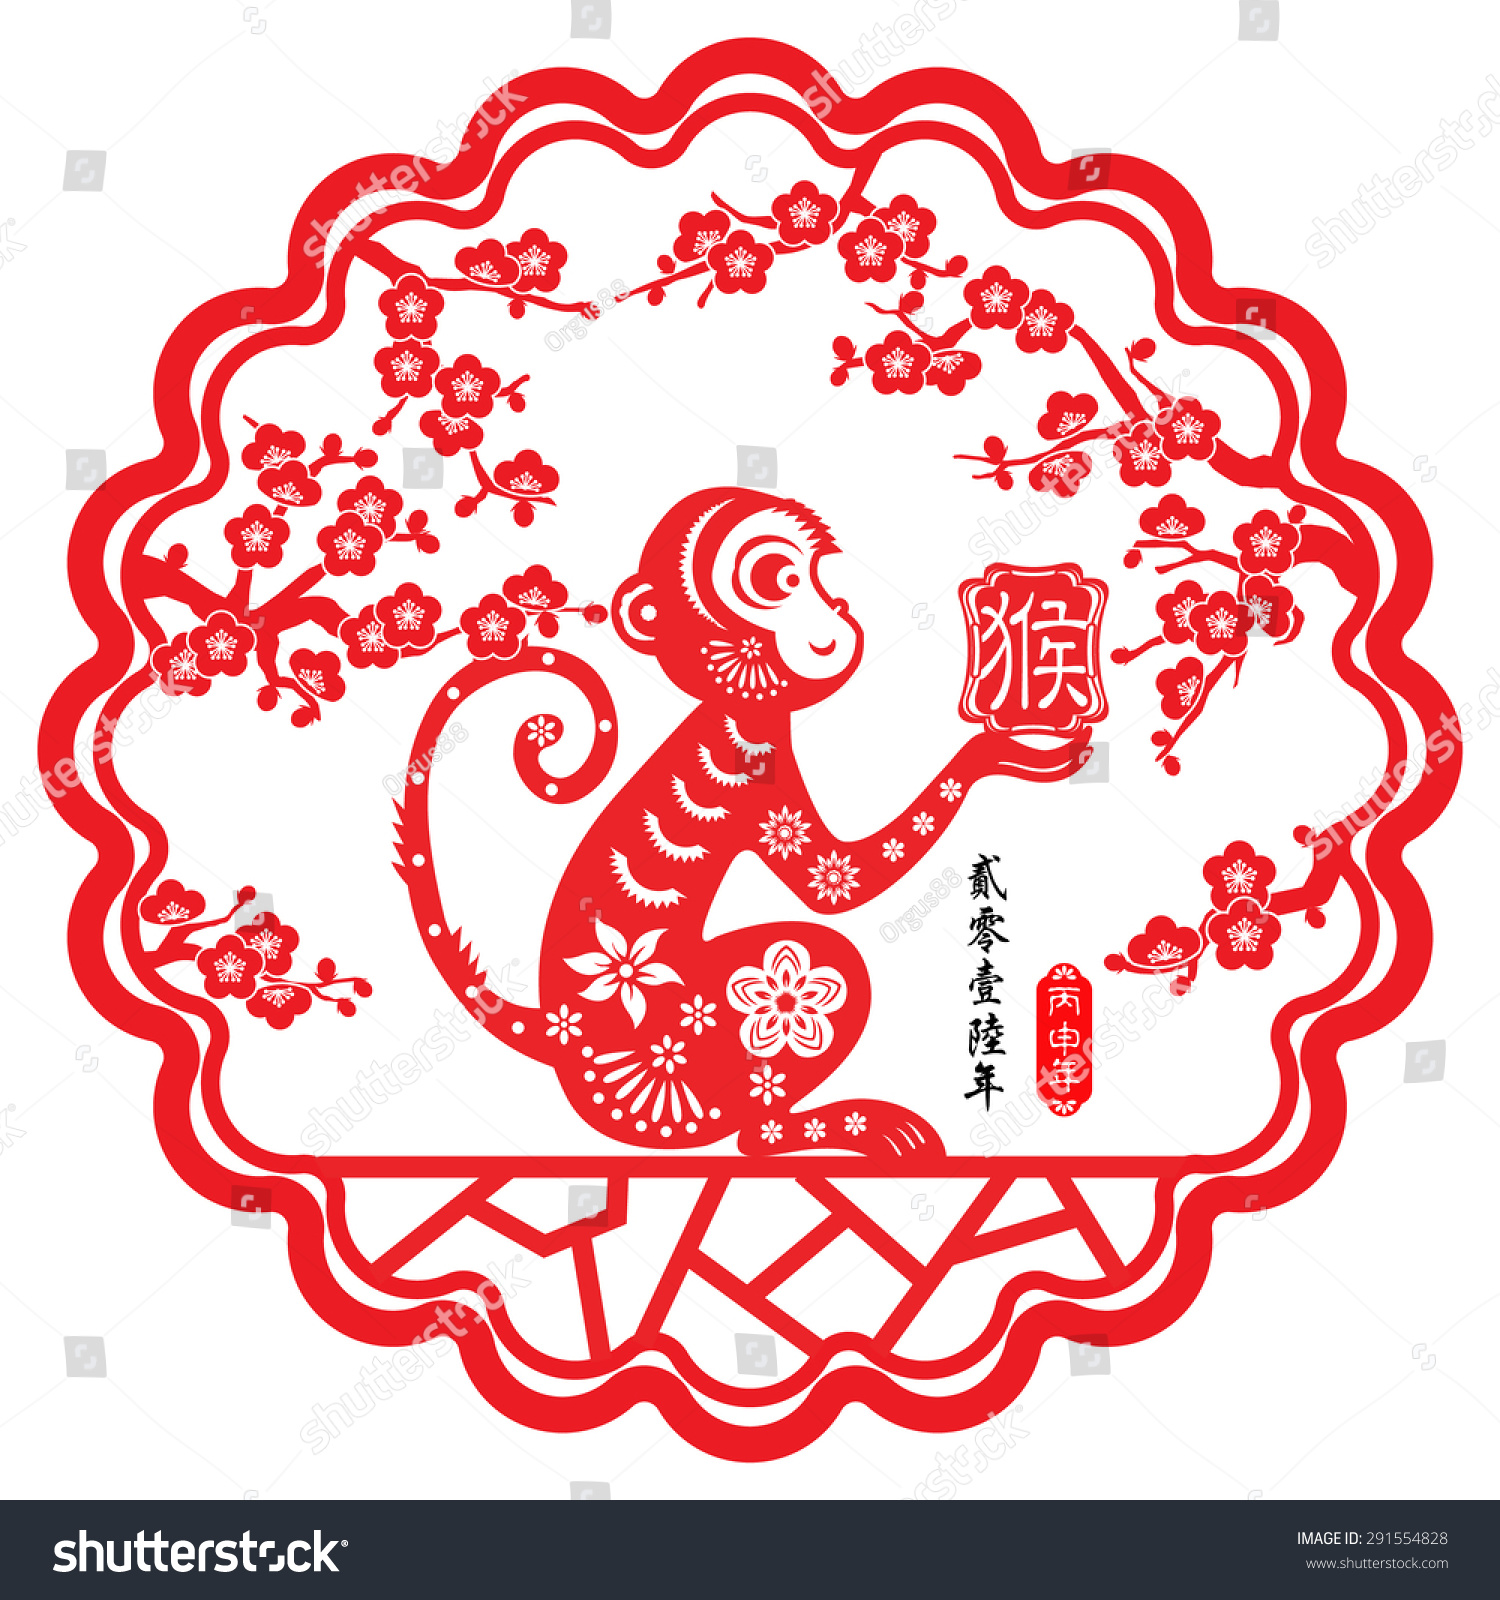 2016 Lunar New Year Greeting Card Stock Vector 291554828 ...